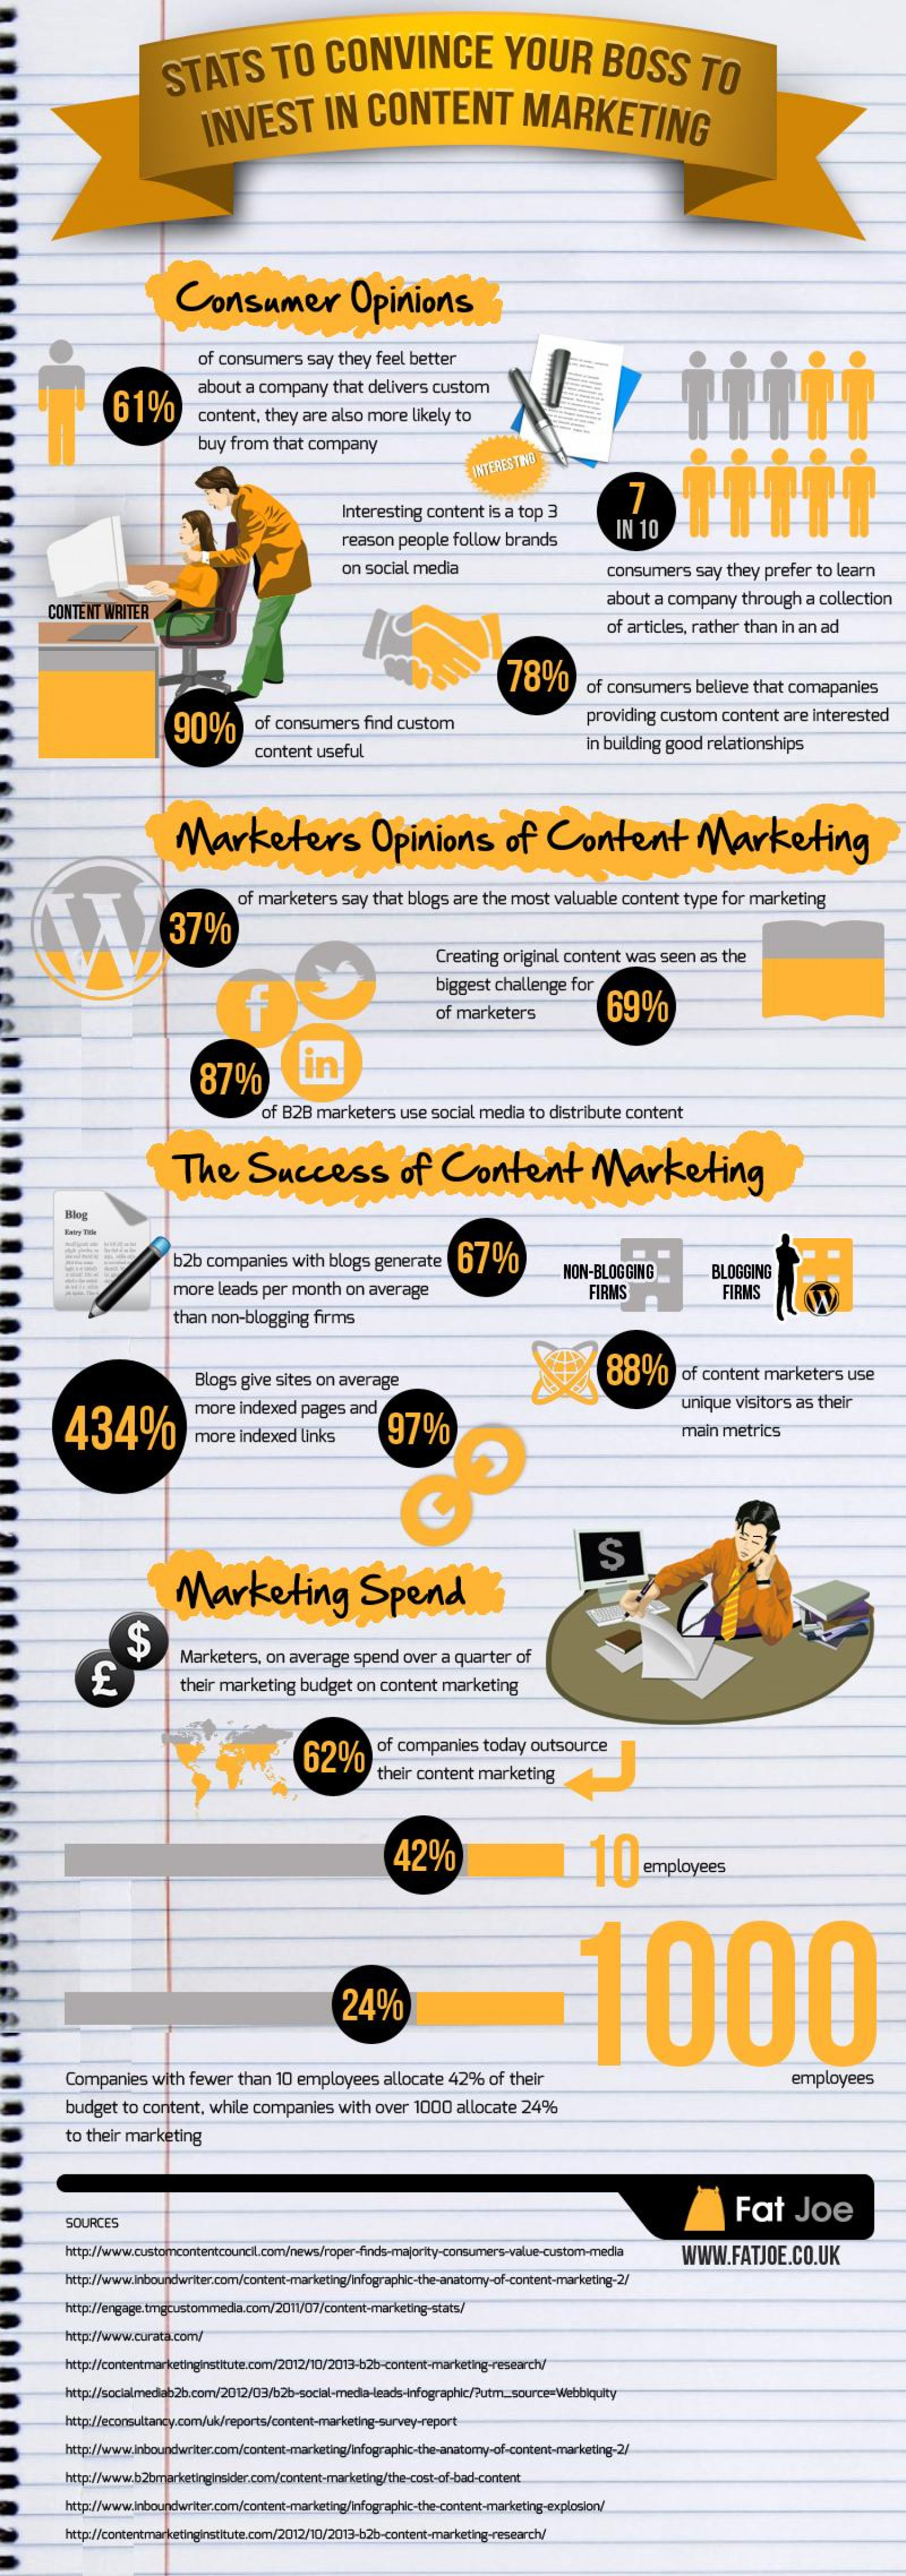 Stats To Convince Your Boss To Invest In Content Marketing Infographic